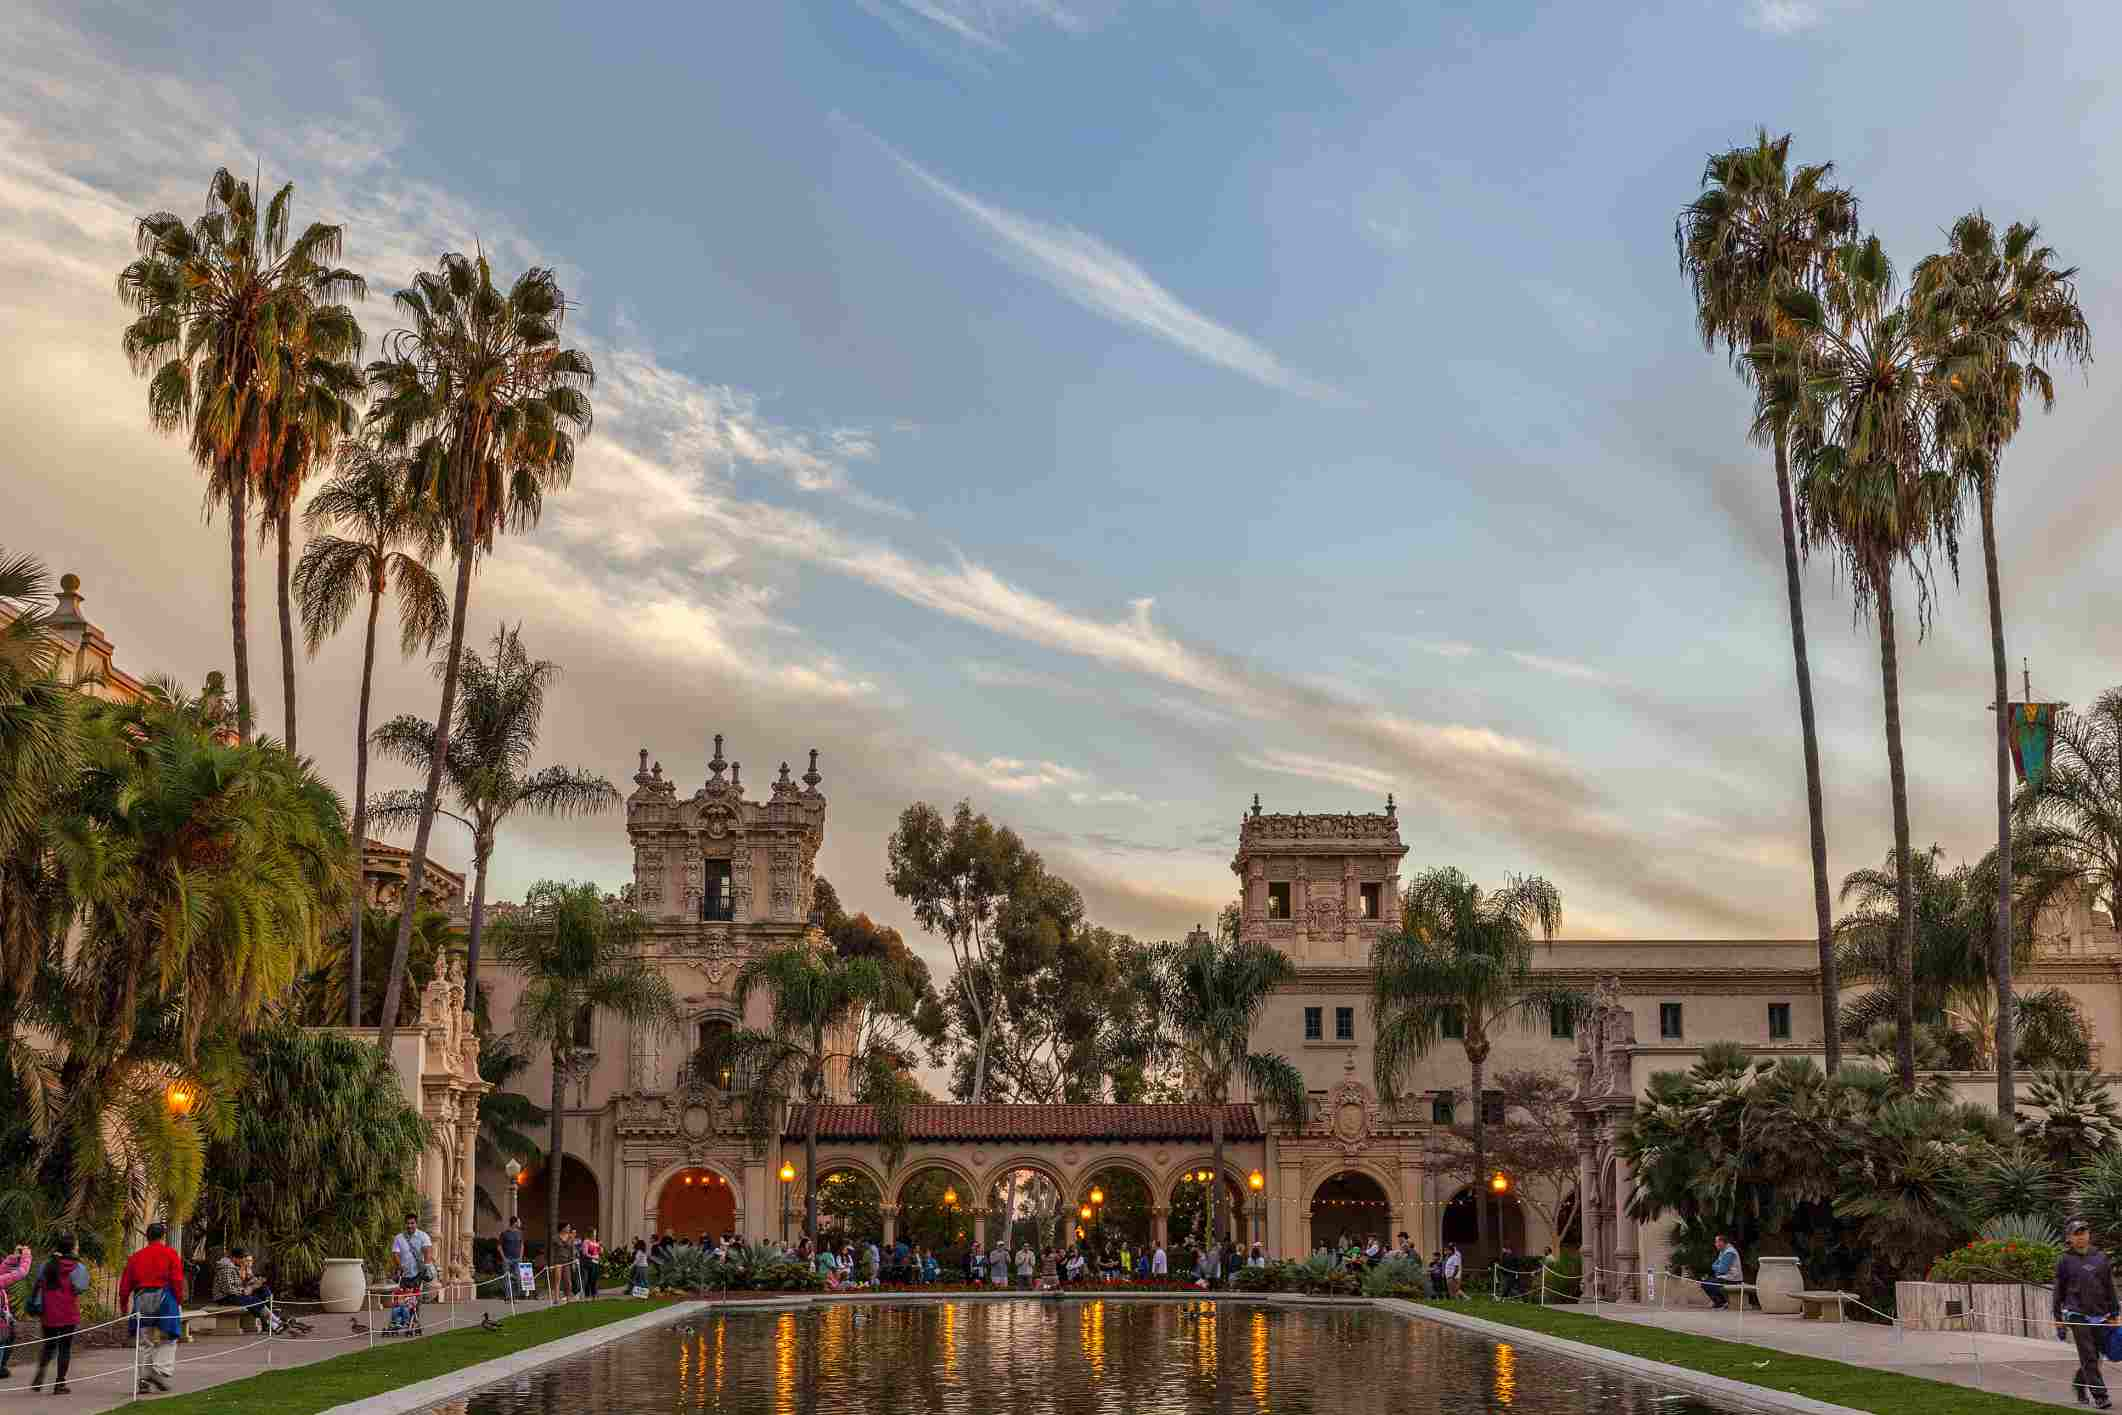 Overlooking lily pond in Balboa Park, San Diego, California, USA